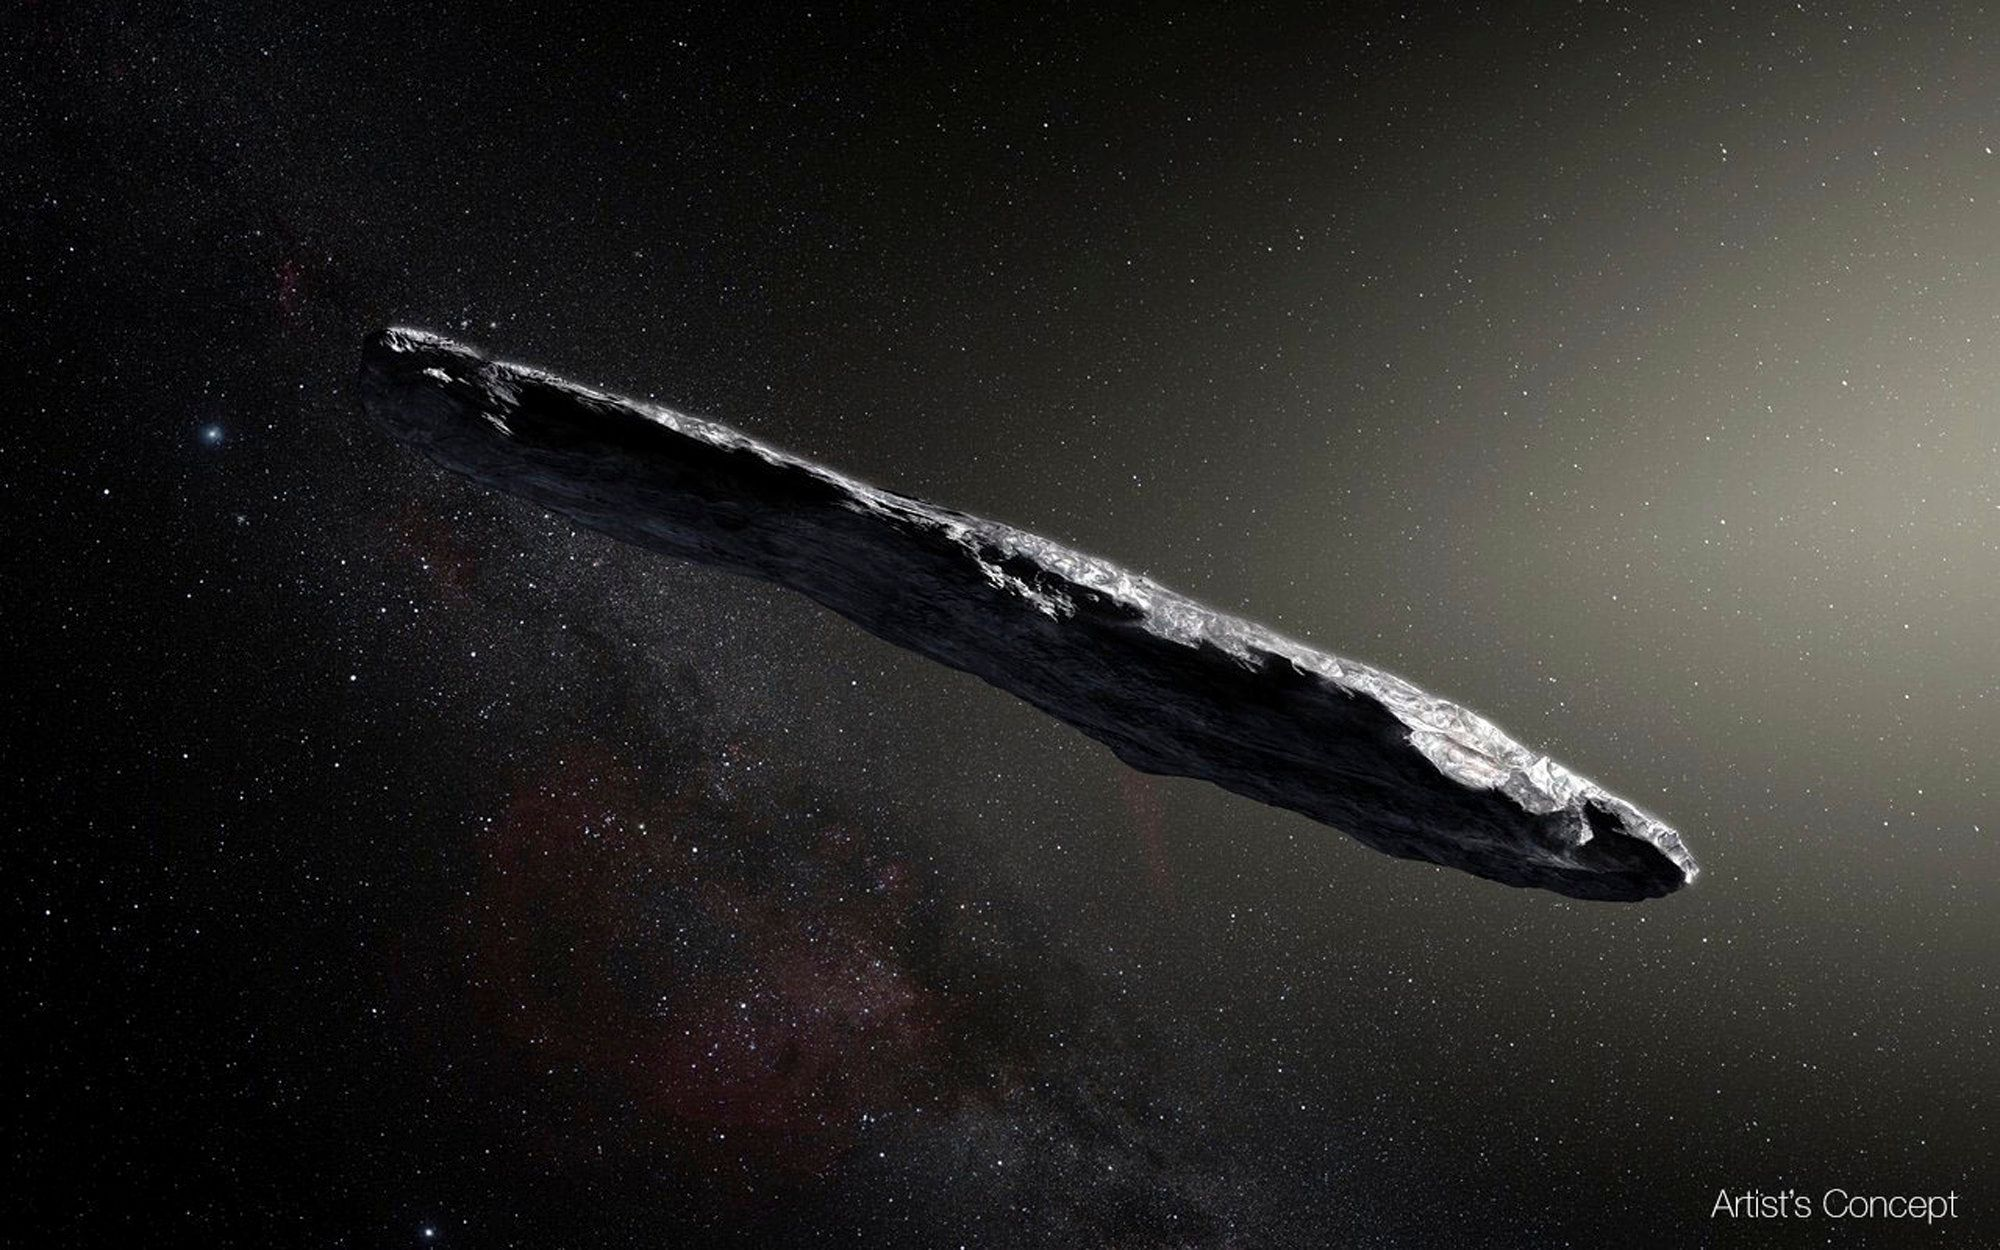 """FILE - This artist's rendering provided by the European Southern Observatory shows the interstellar object named """"Oumuamua"""" which was discovered on Oct. 19, 2017 by the Pan-STARRS 1 telescope in Hawaii. In the Wednesday, June 27, 2018 edition of the journal Nature, a European-led team makes the case it is a comet, not an asteroid. (M. Kornmesser/European Southern Observatory via AP)"""